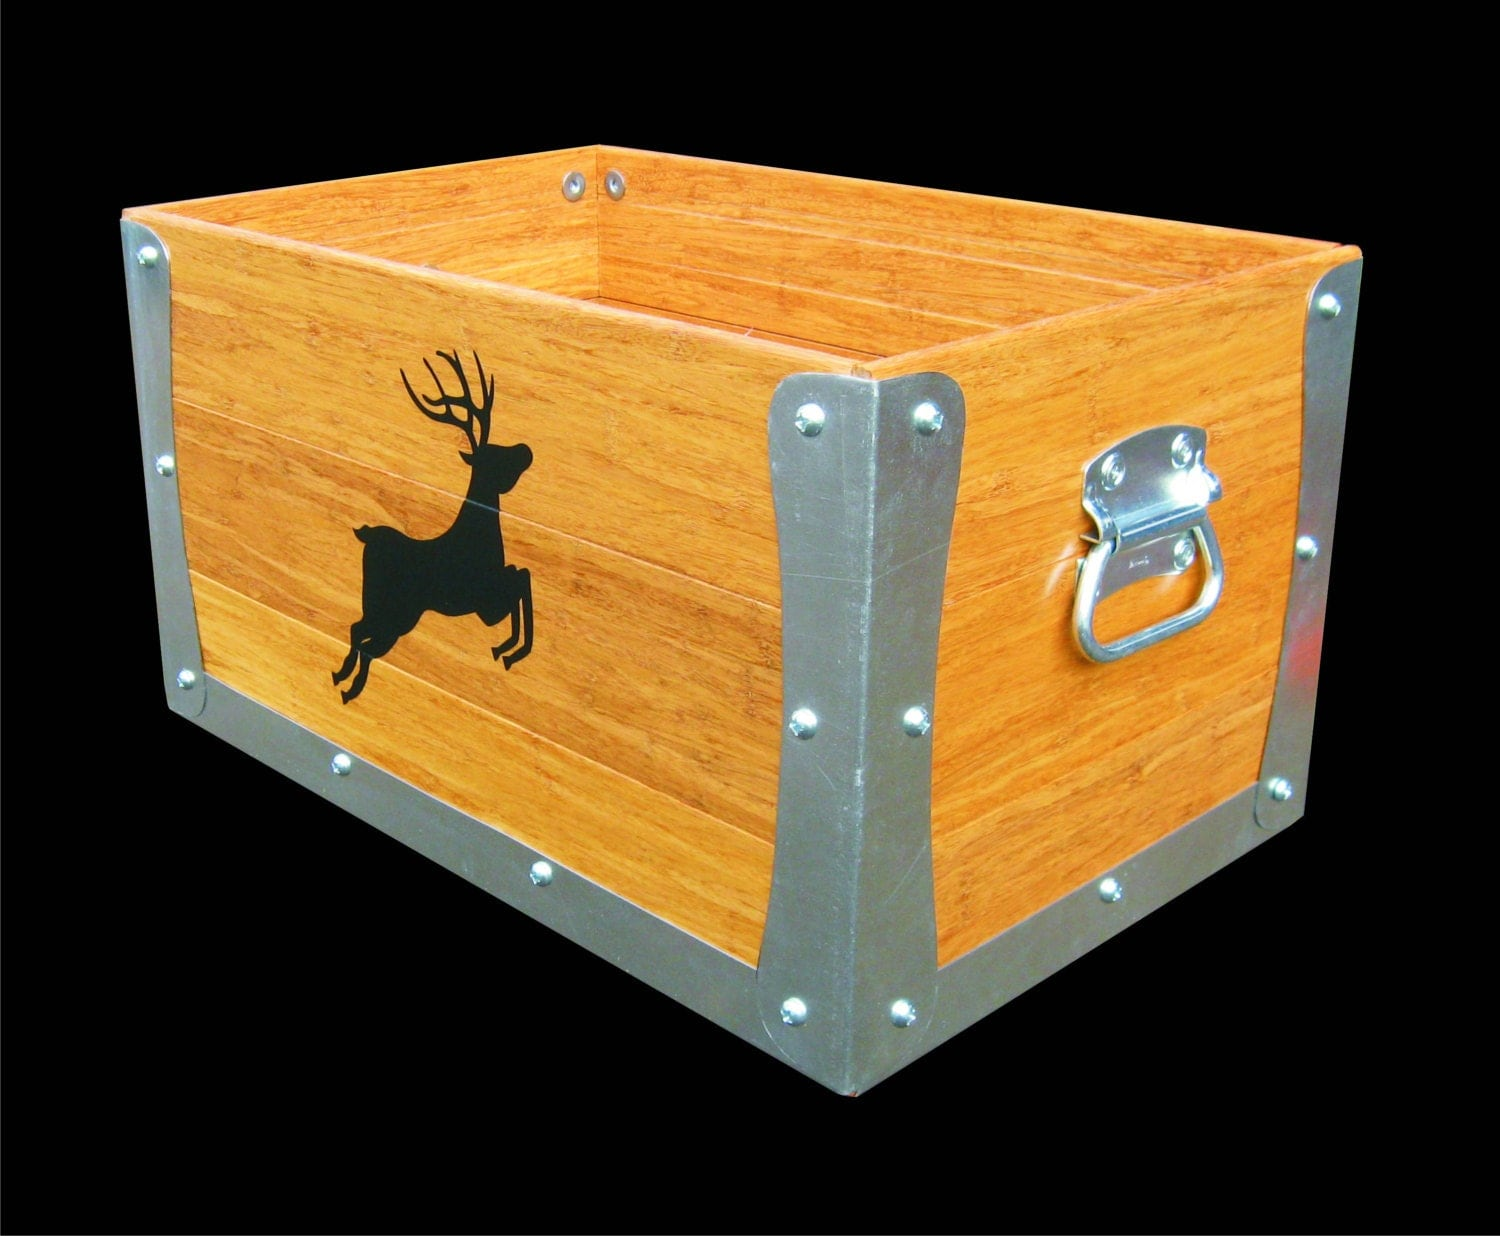 Decorative Kindling Box : Decorative wooden tool crate hearth box kindling by